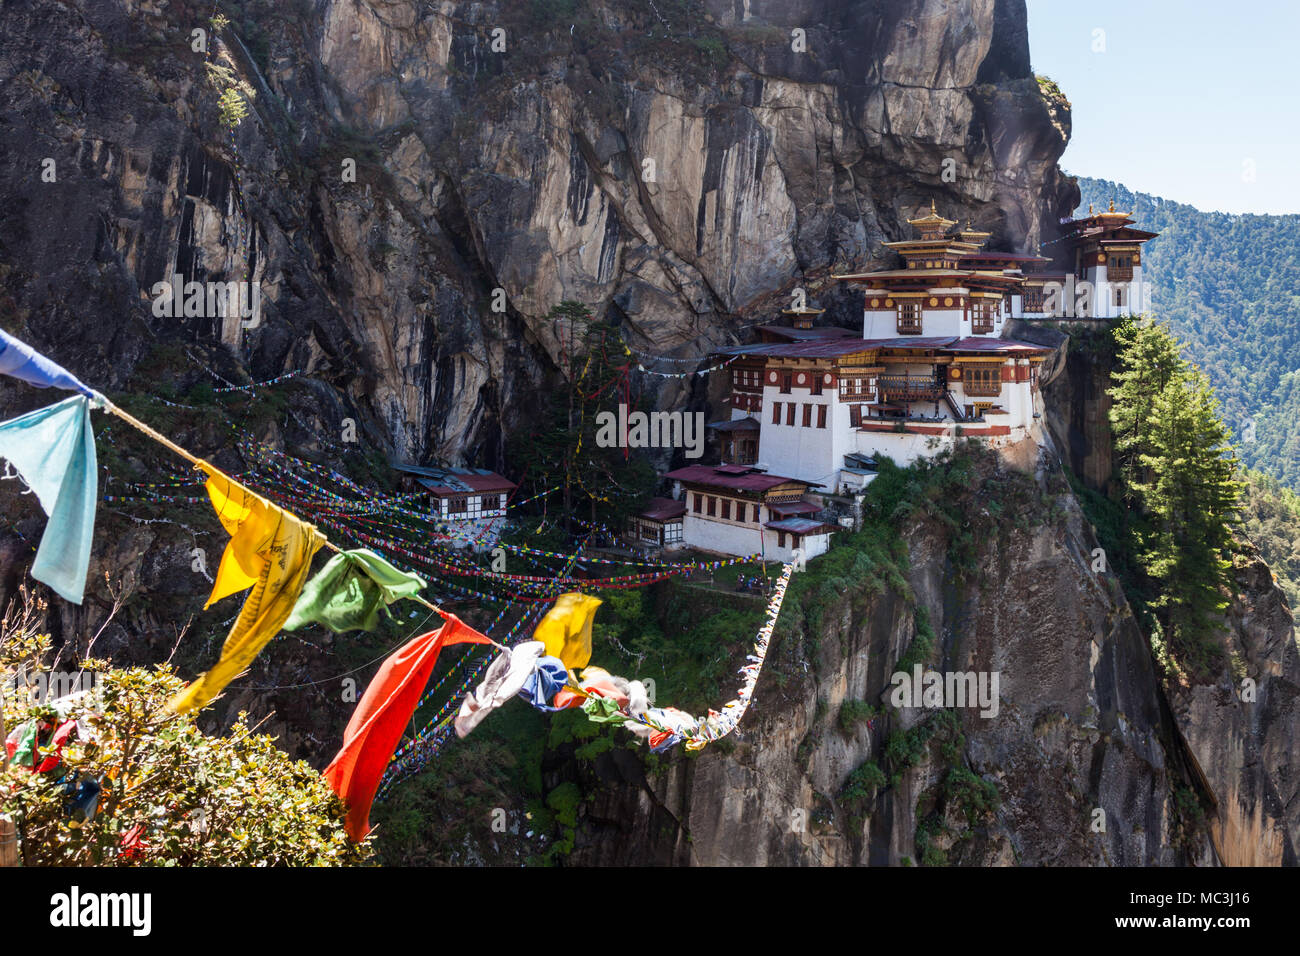 Paro Taktsang aka Tiger's nest is an old monastery situated on a cliff on a mountain at Paro, Bhutan - Stock Image